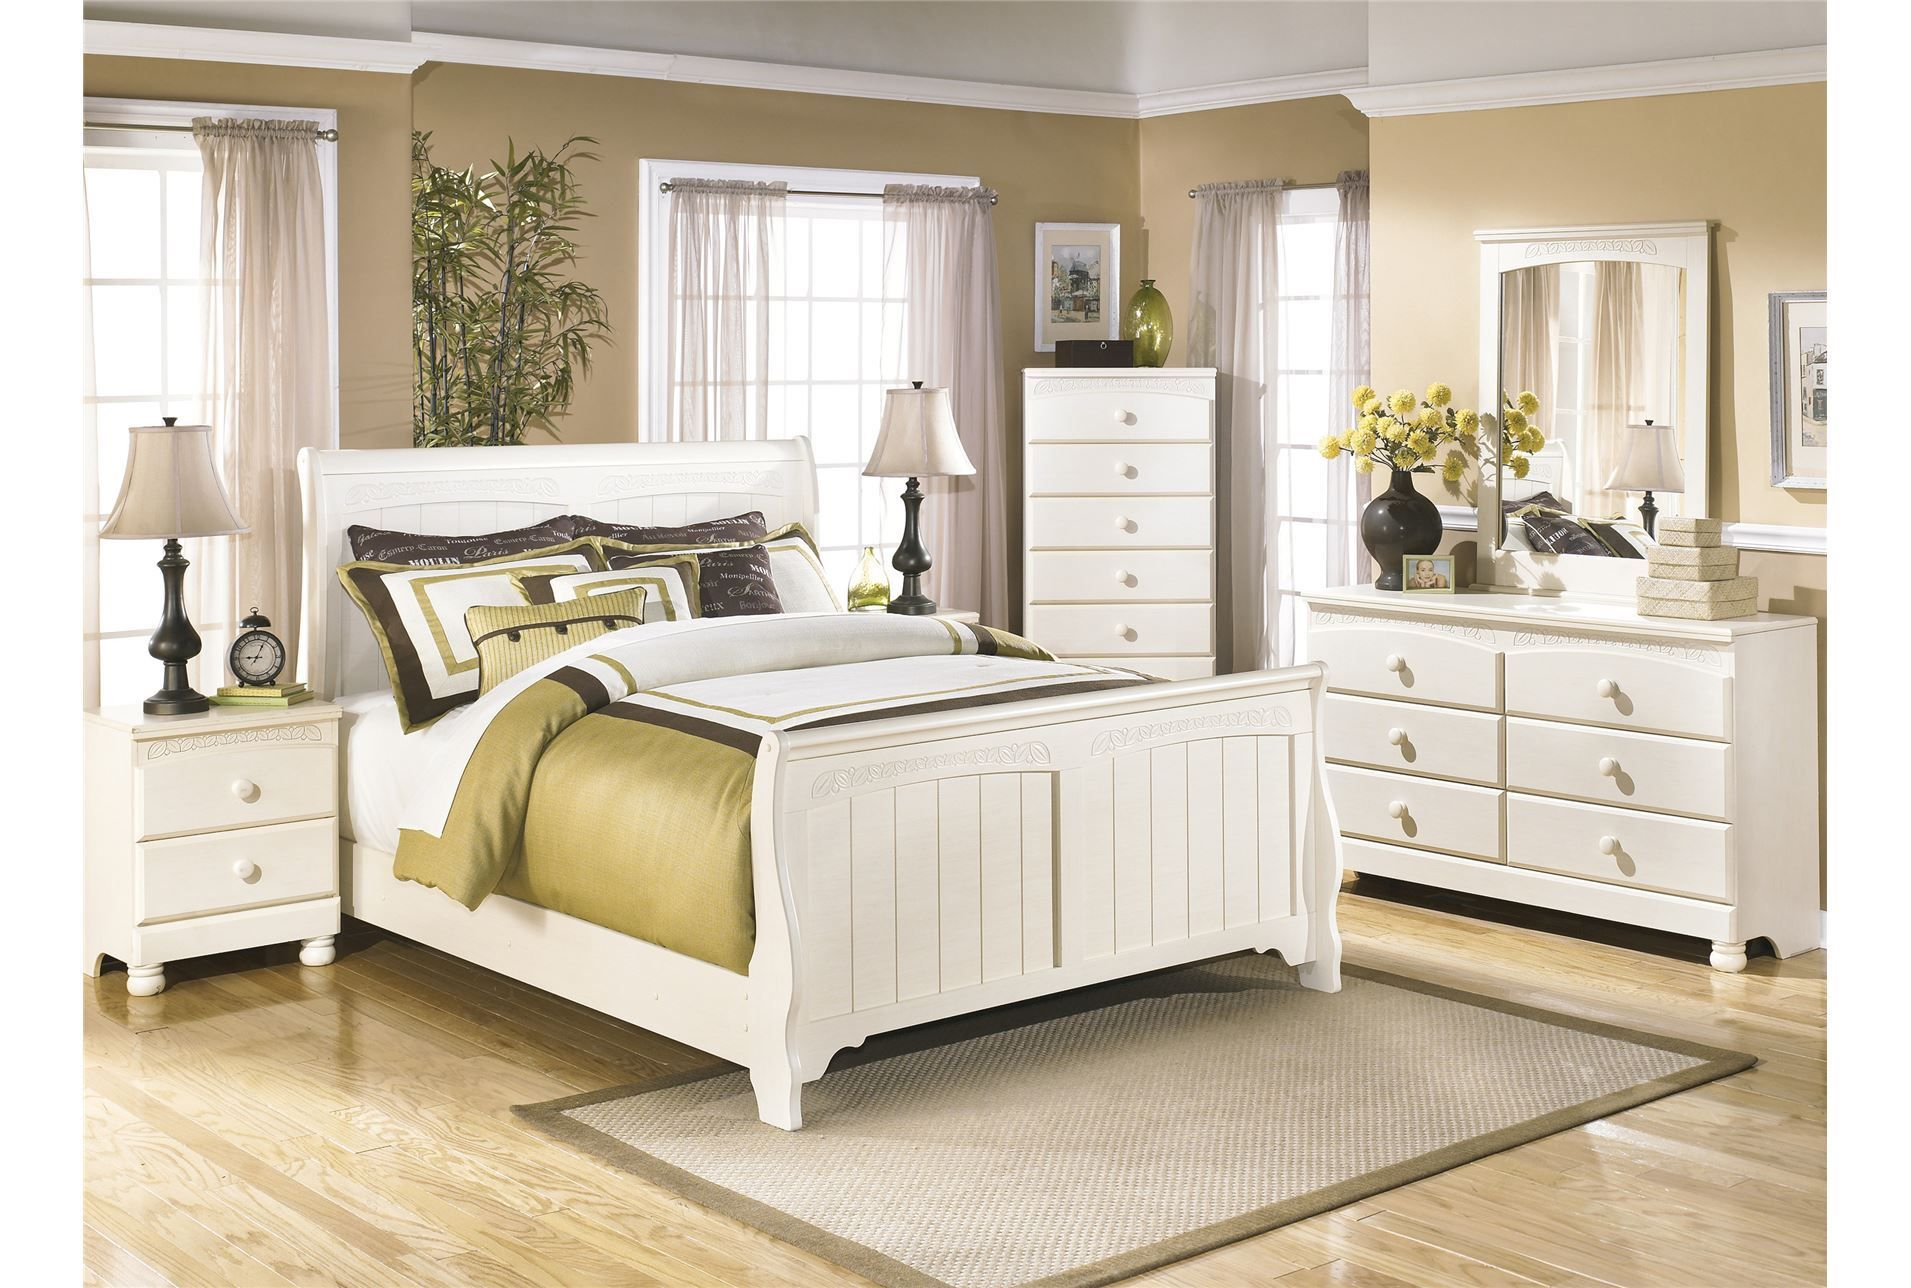 Cream Cottage Full Sleigh Bed Living Spaces/ for guest